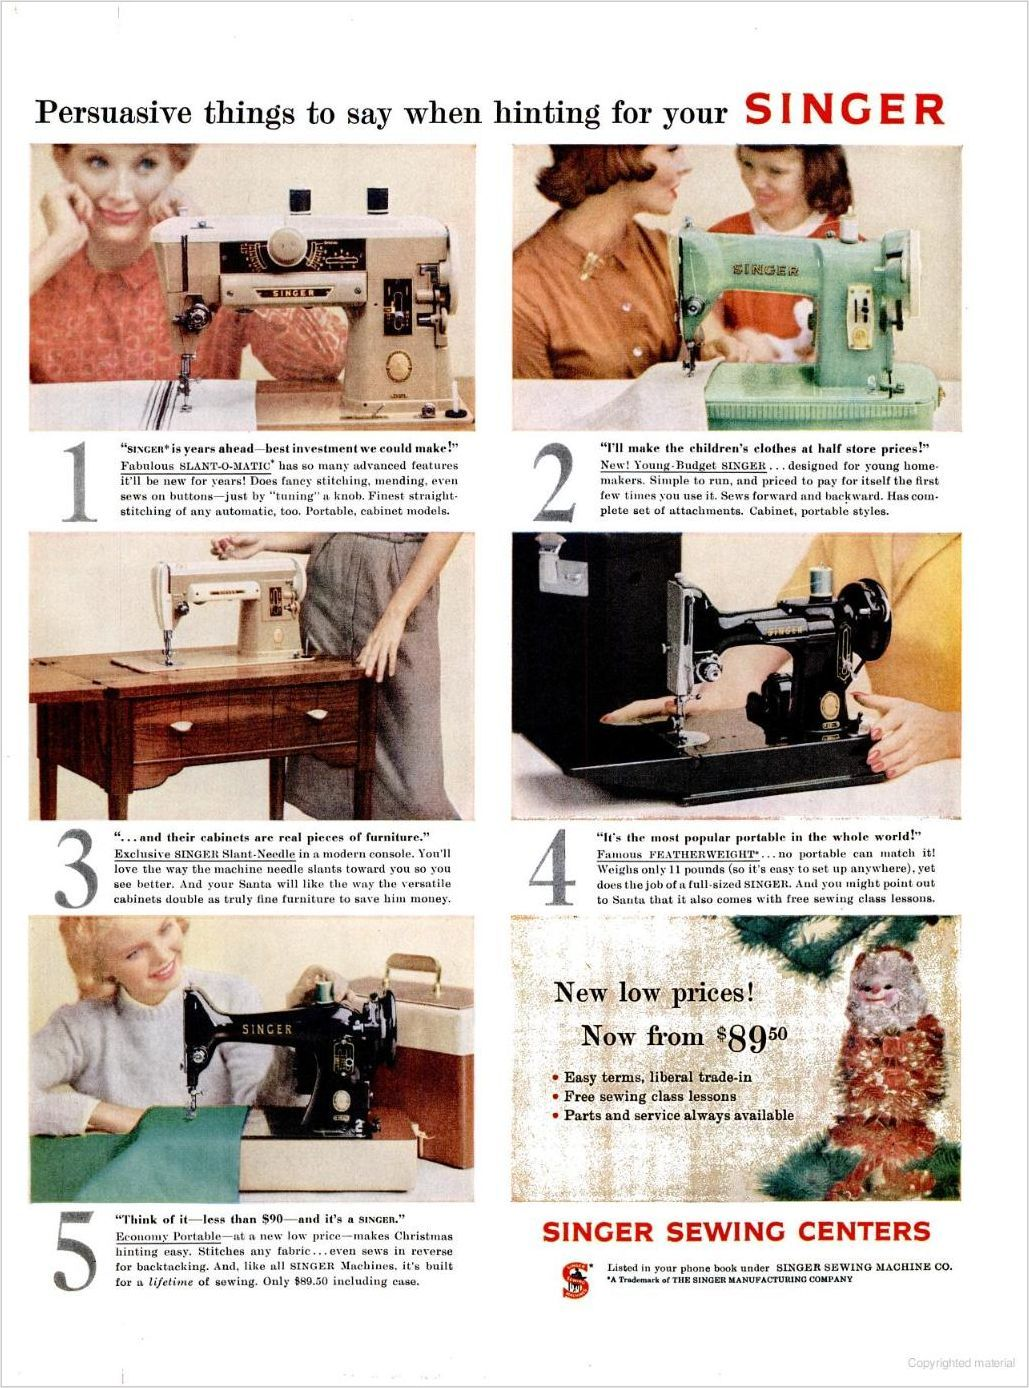 Vintage Singer sewing machine ads from the 1940s, 1950s, and 1960s.